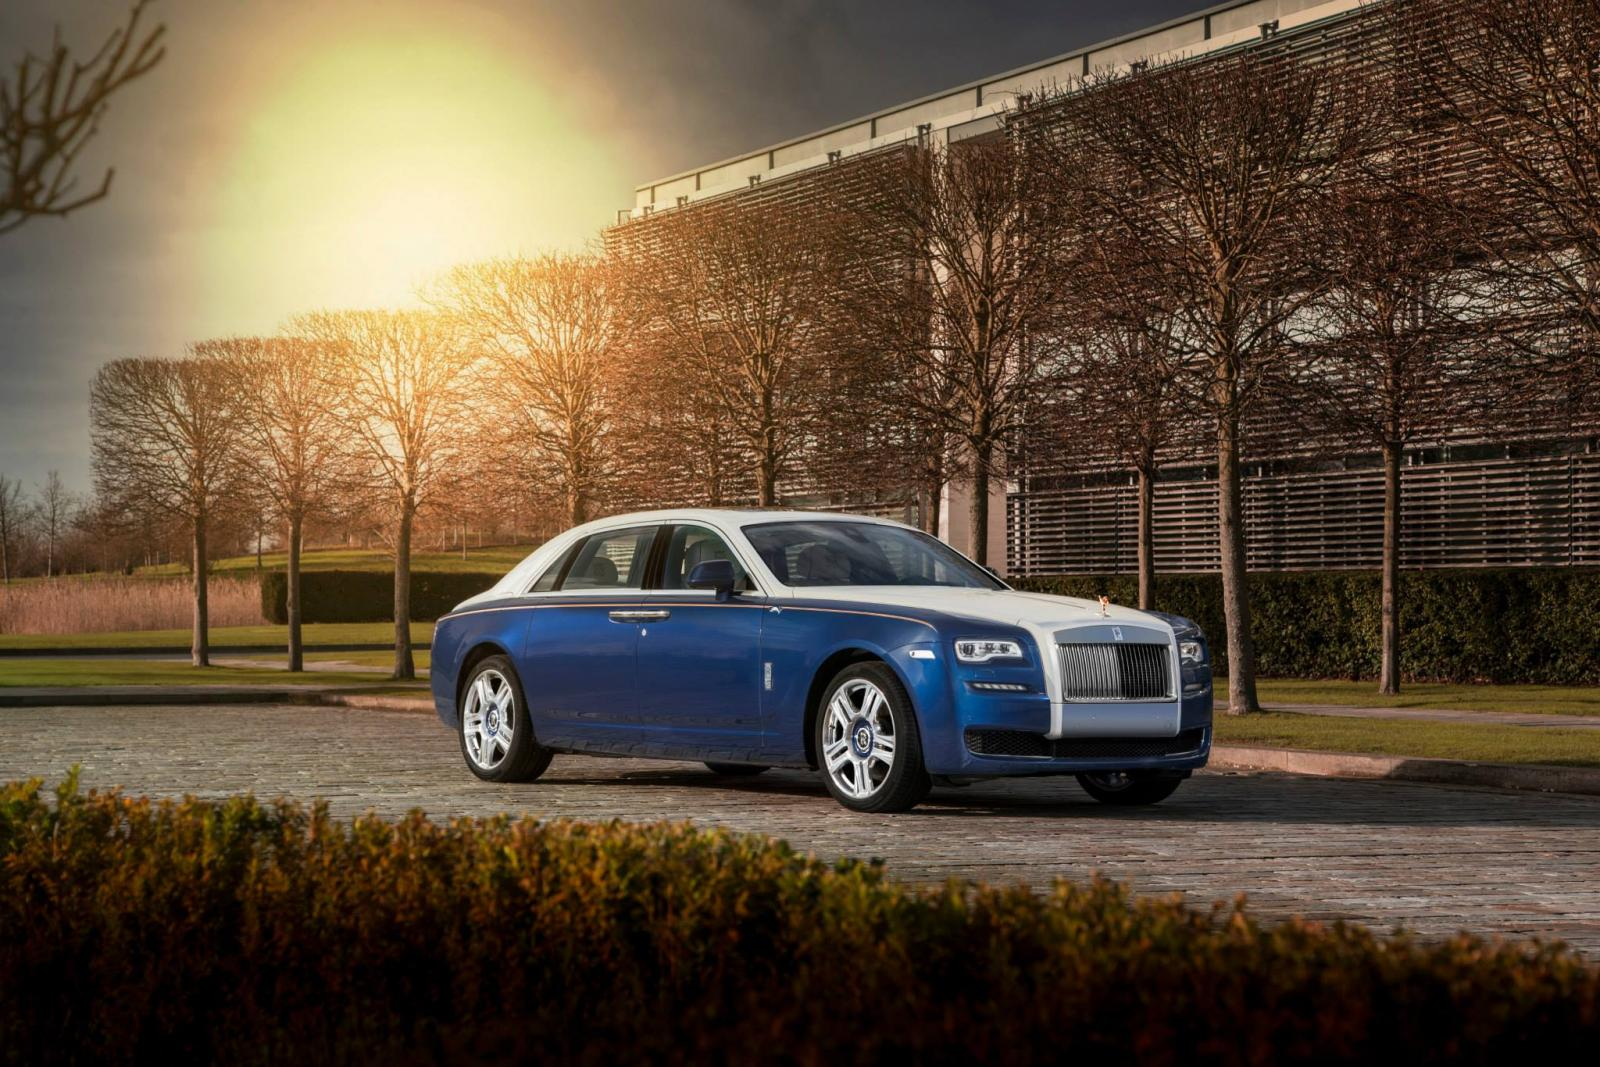 Rolls Royce Ghost Mysore Collection Is Only For Abu Dhabi And It's Closest Thing To A Perfection You Will See